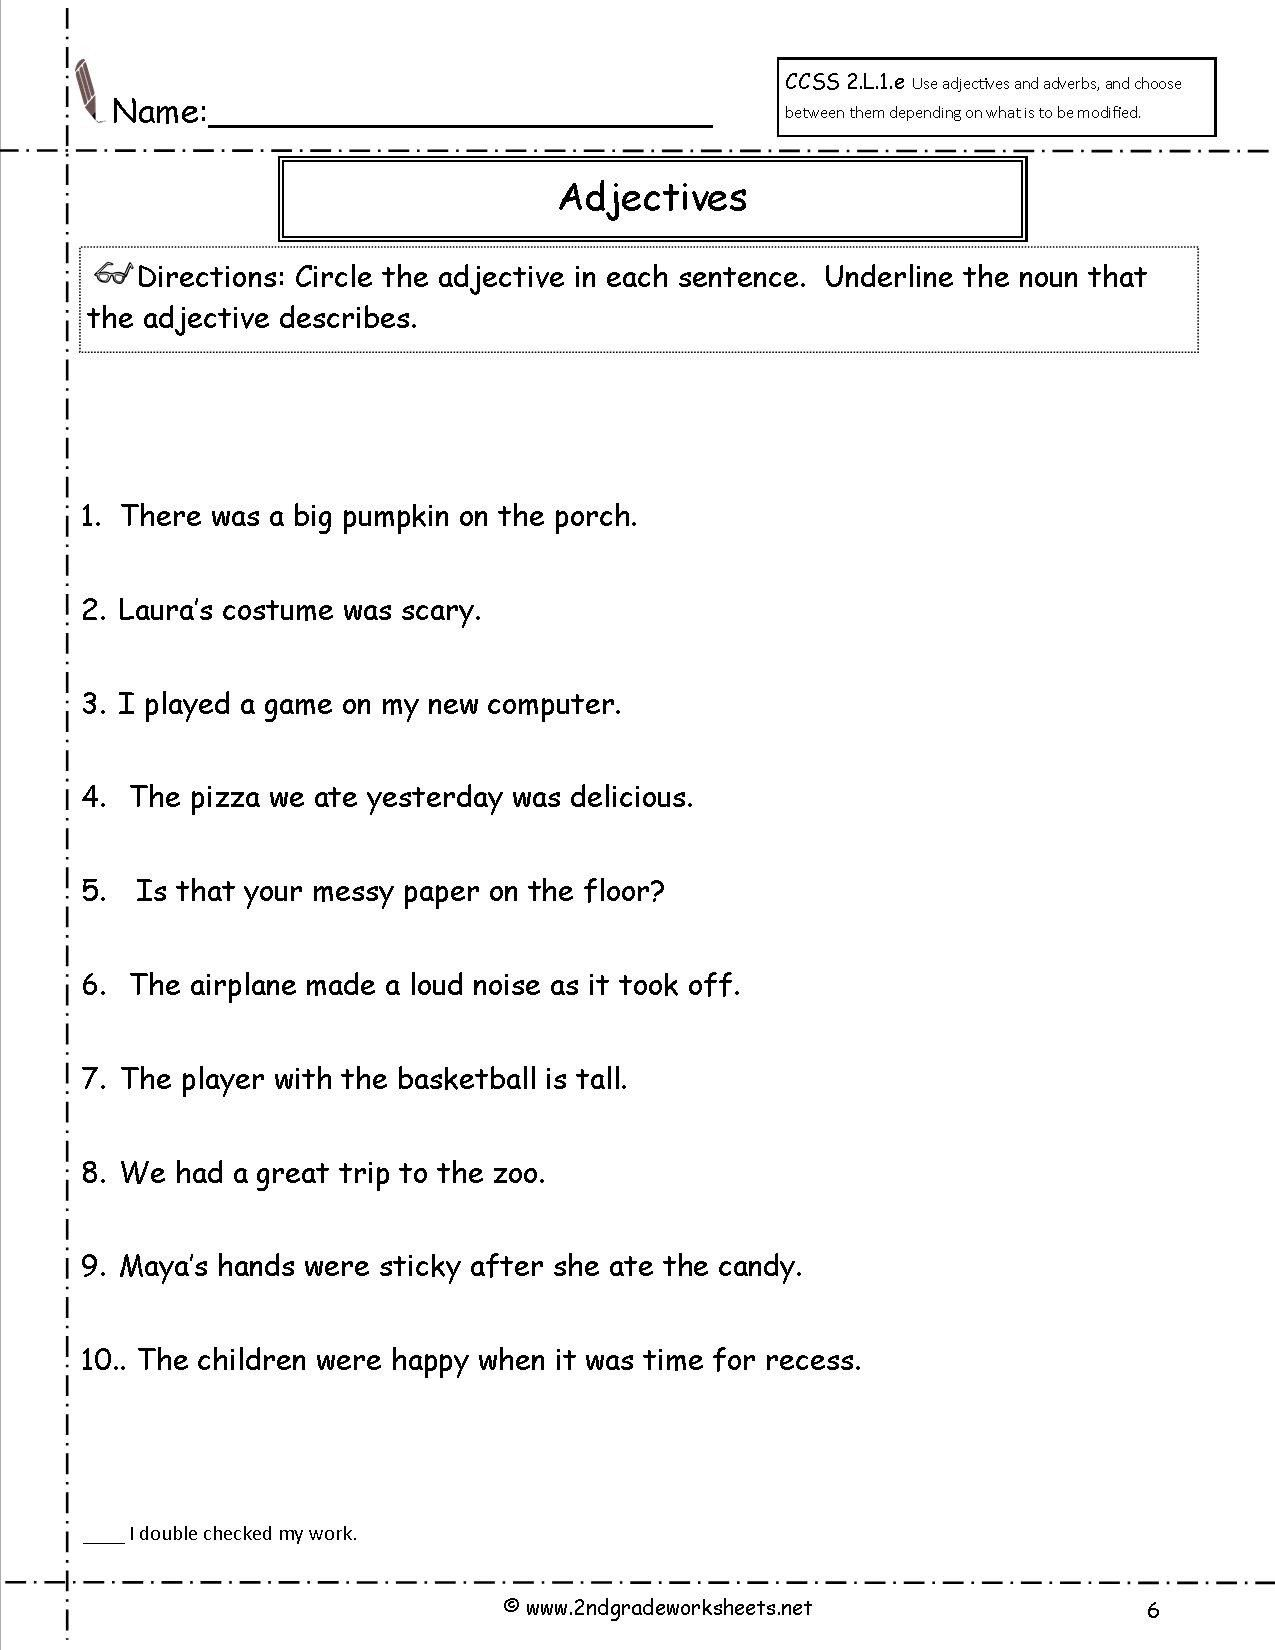 Free Printable Adjective Worksheets Free Using Adjectives